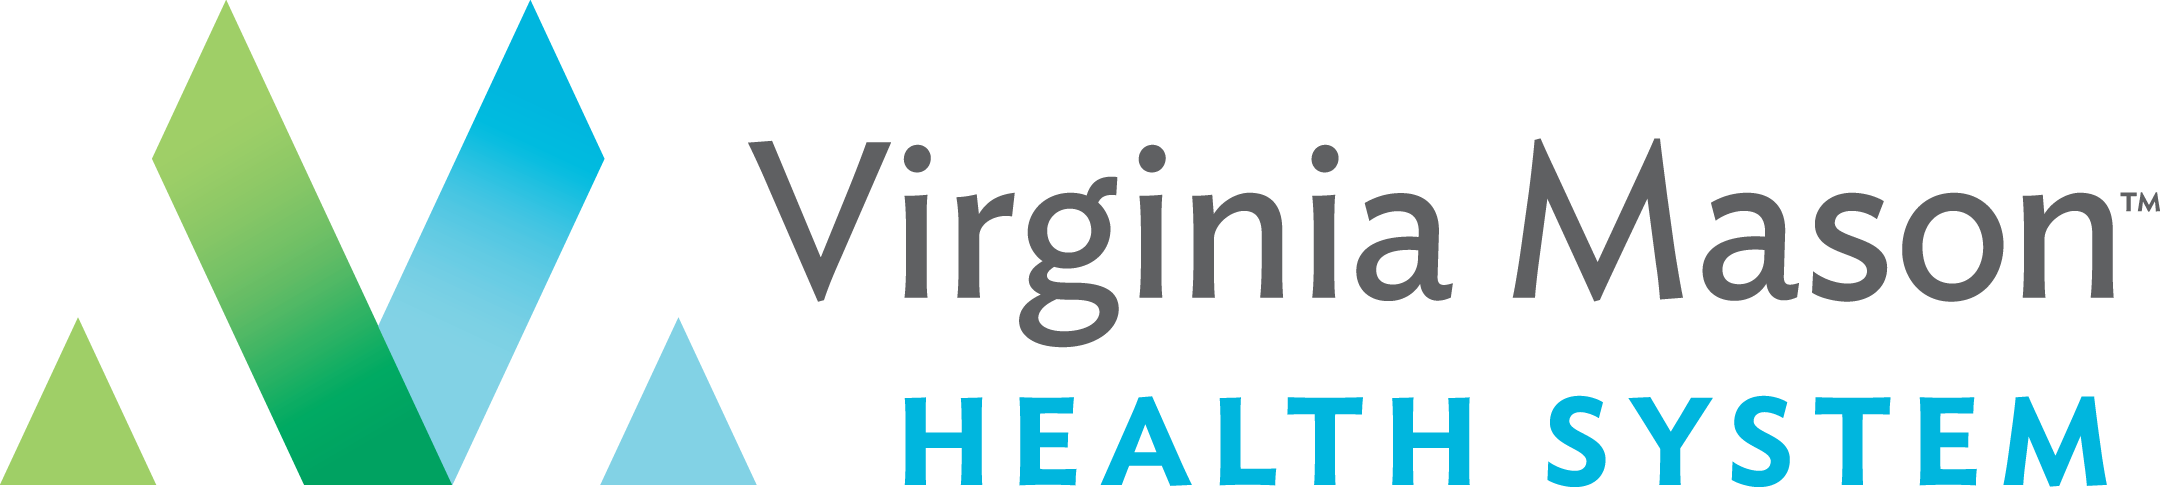 Virginia Mason Hospital & Medical Center